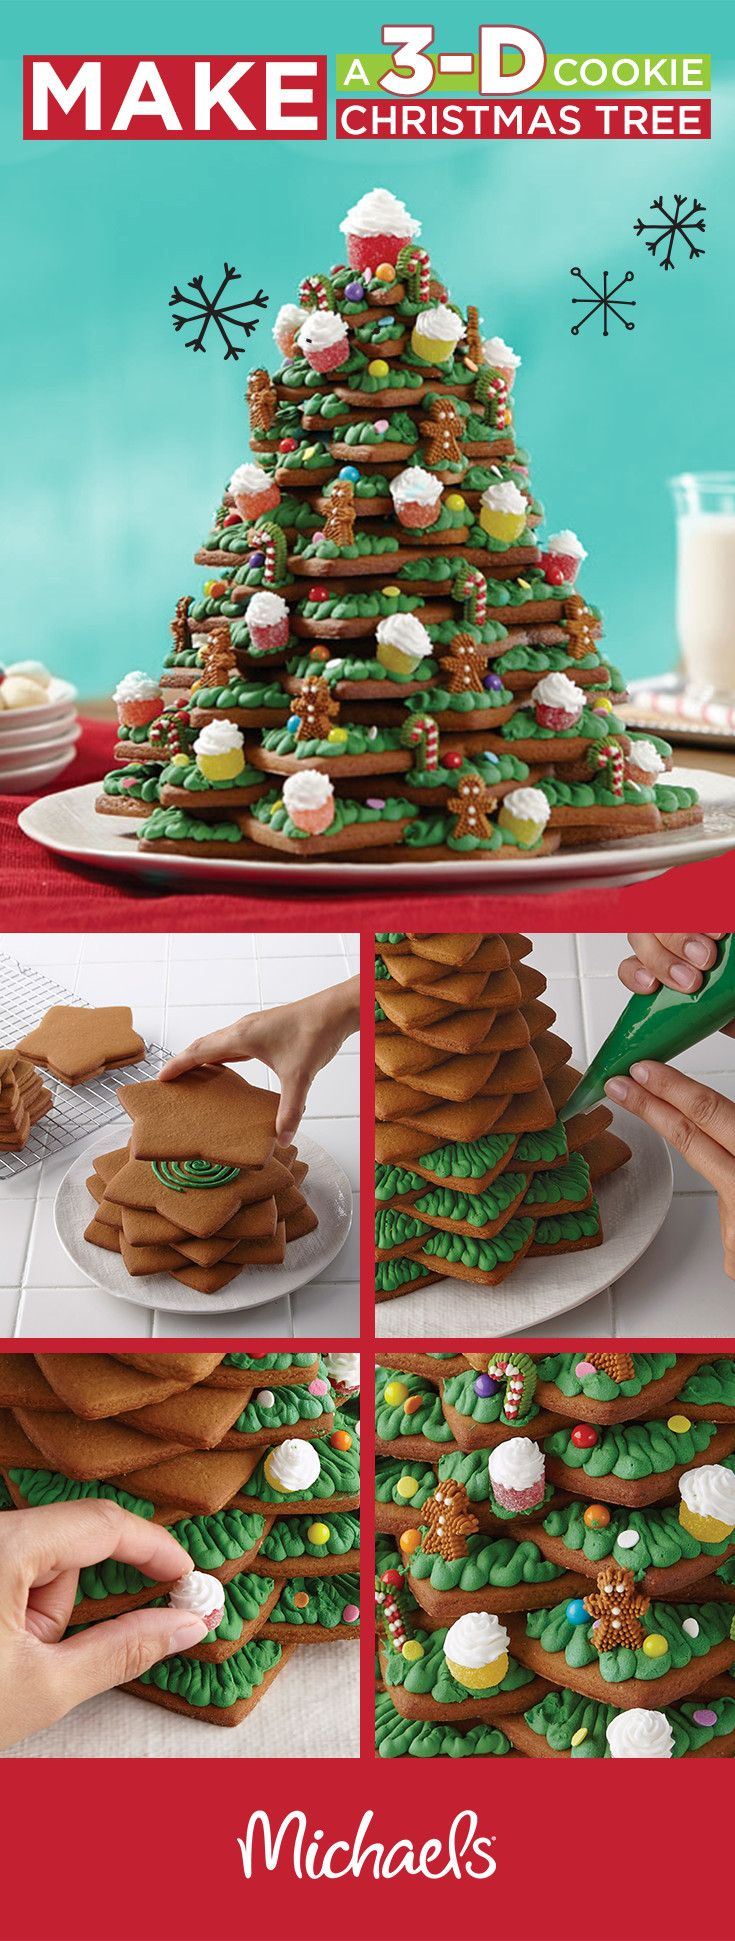 Preserve Your Gingerbread House | Michael store, Gingerbread and ...